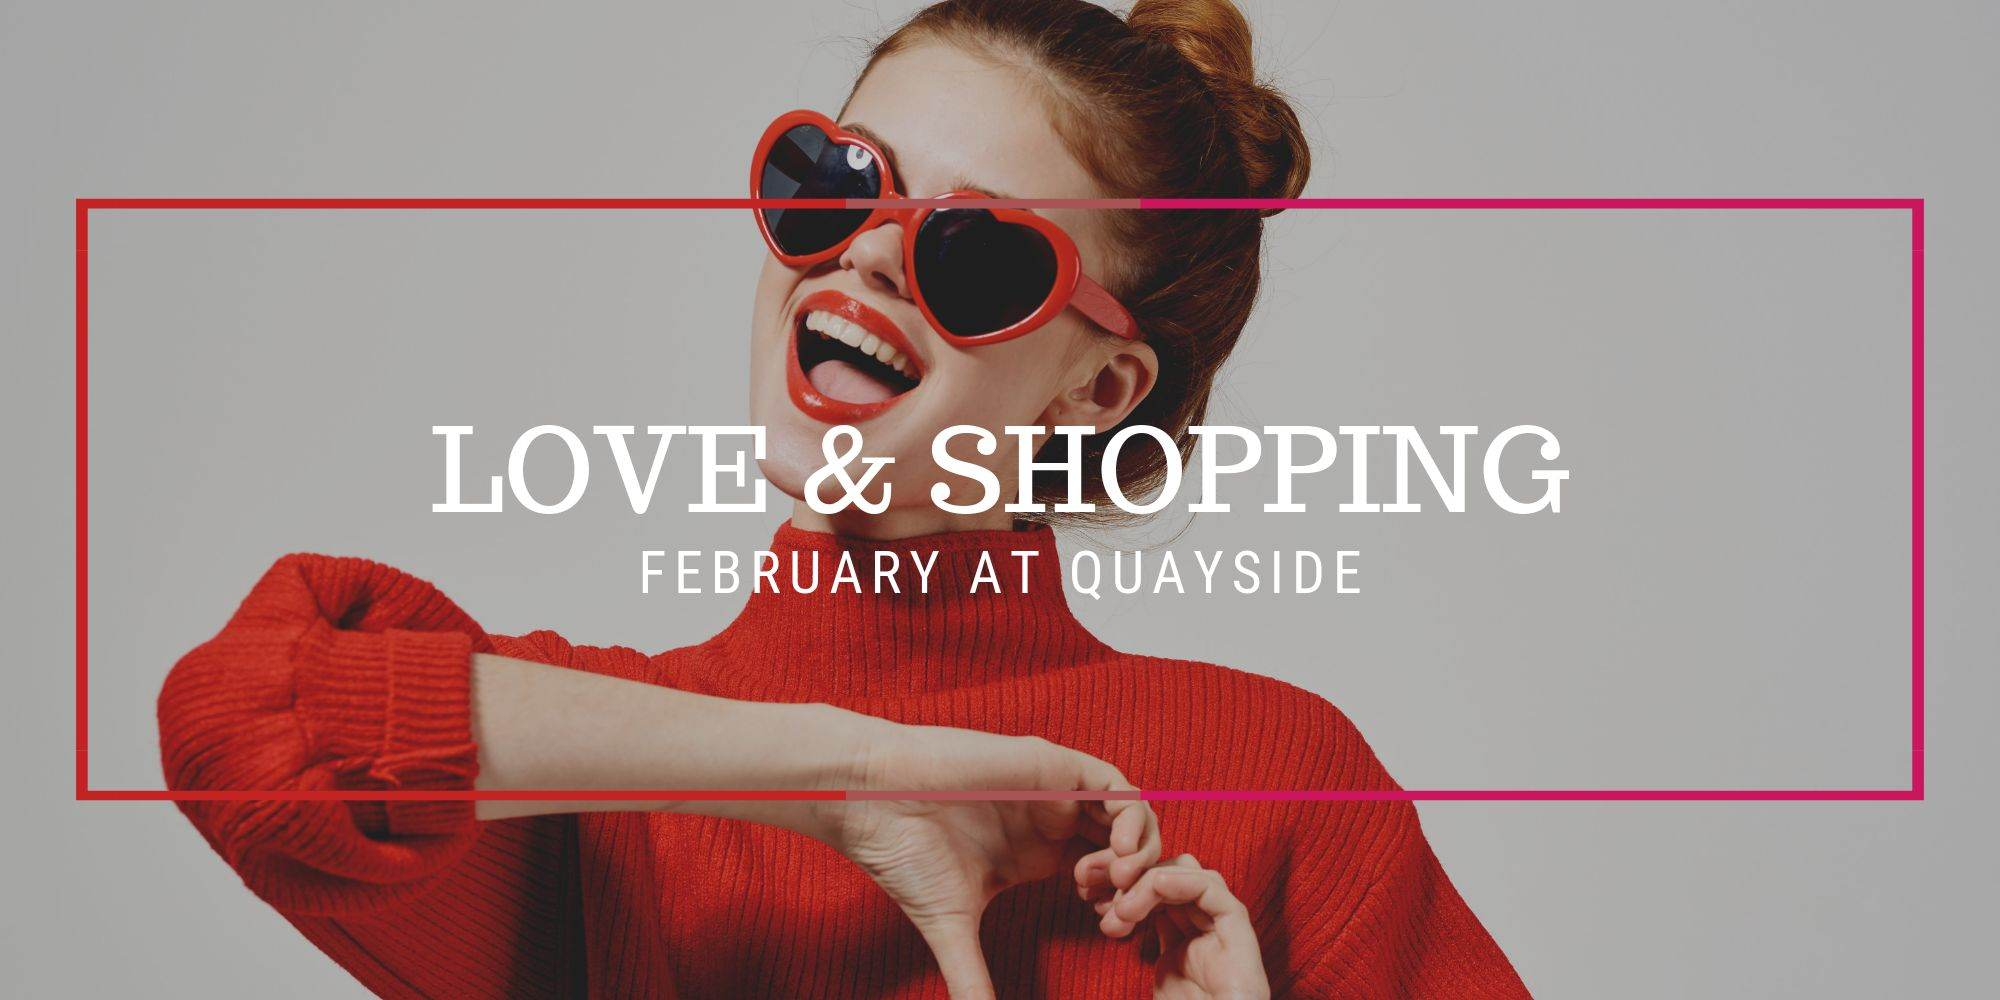 Love and shopping - February at Quayside